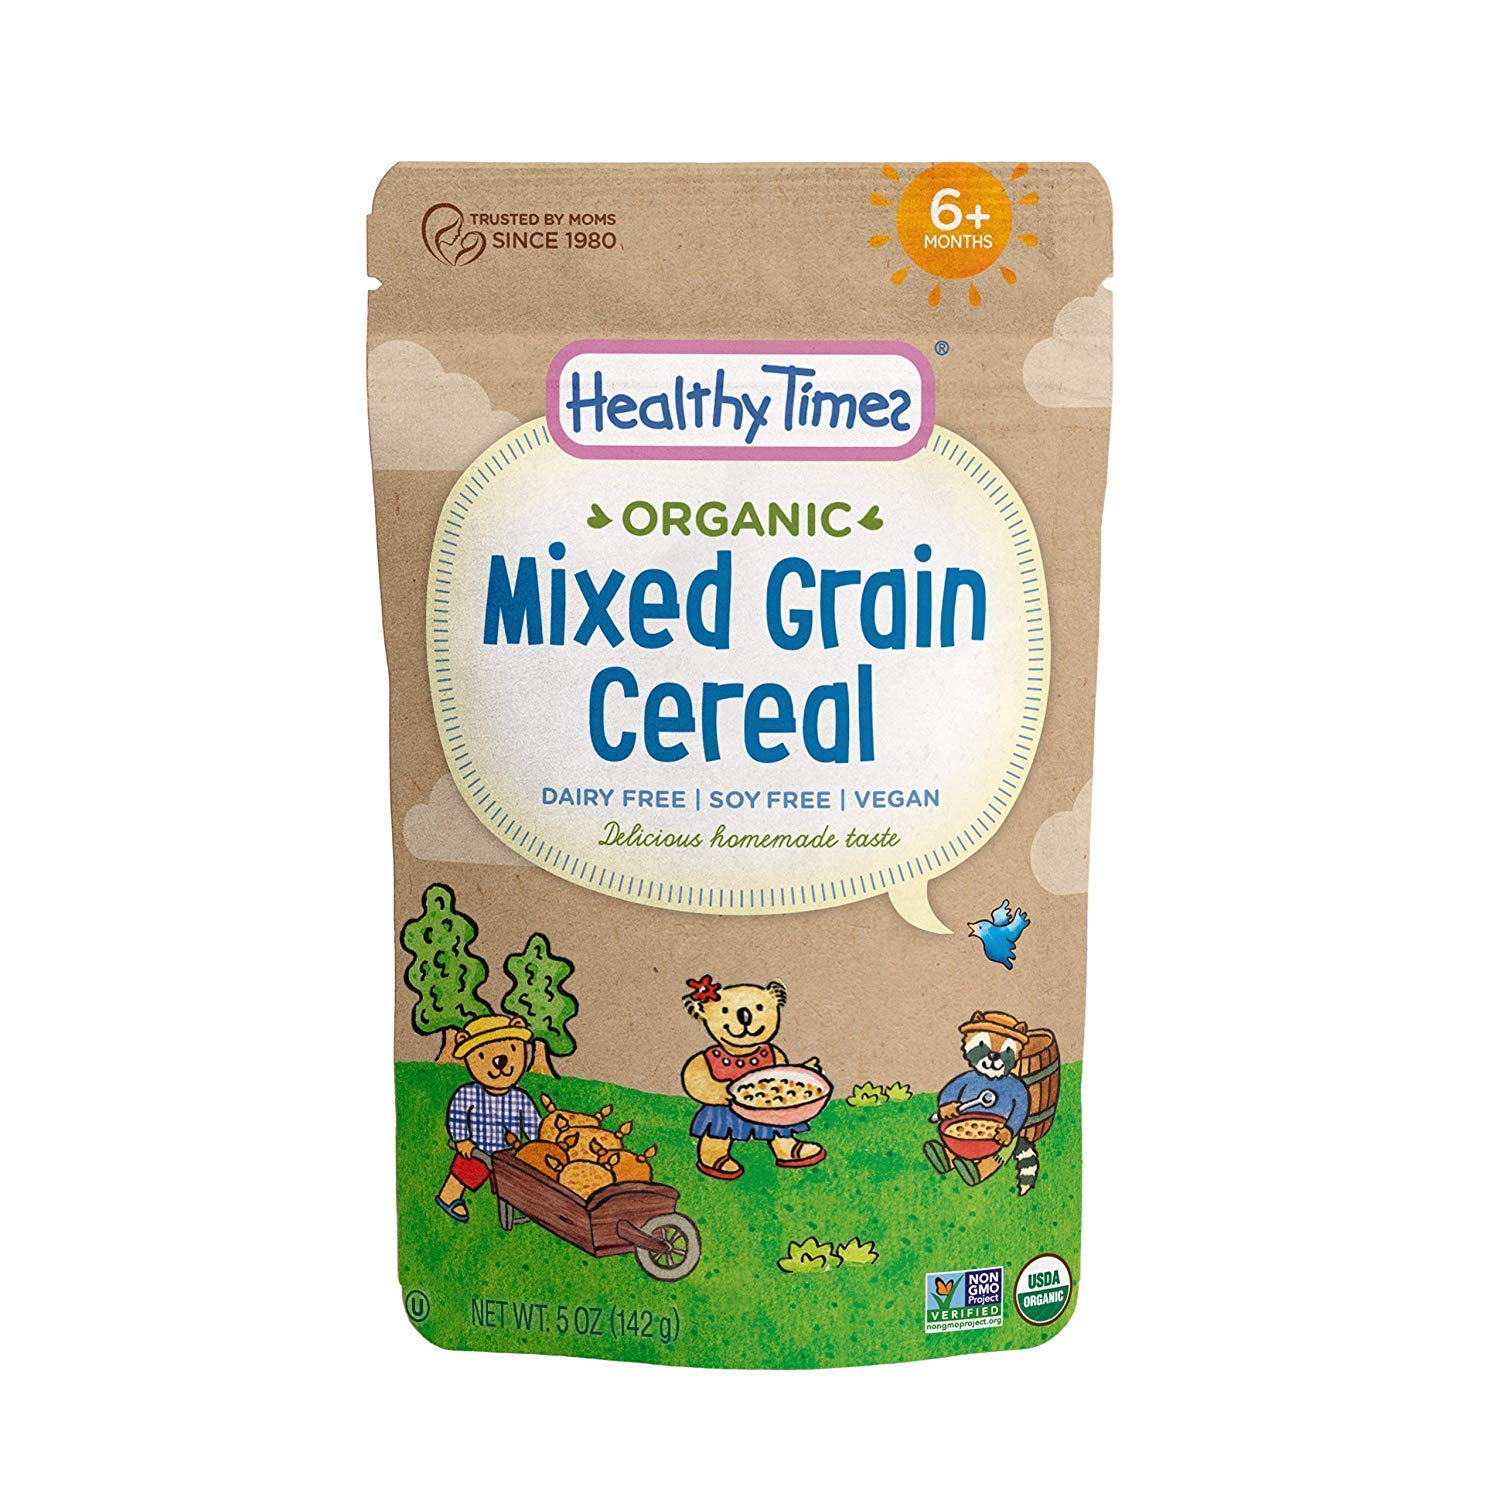 Healthy Times Organic Whole Grain Baby Cereal, Mixed Grain | Baby Food for Babies 4 Months & Older | 5 Oz. Bag, 1 Count by Healthy Times